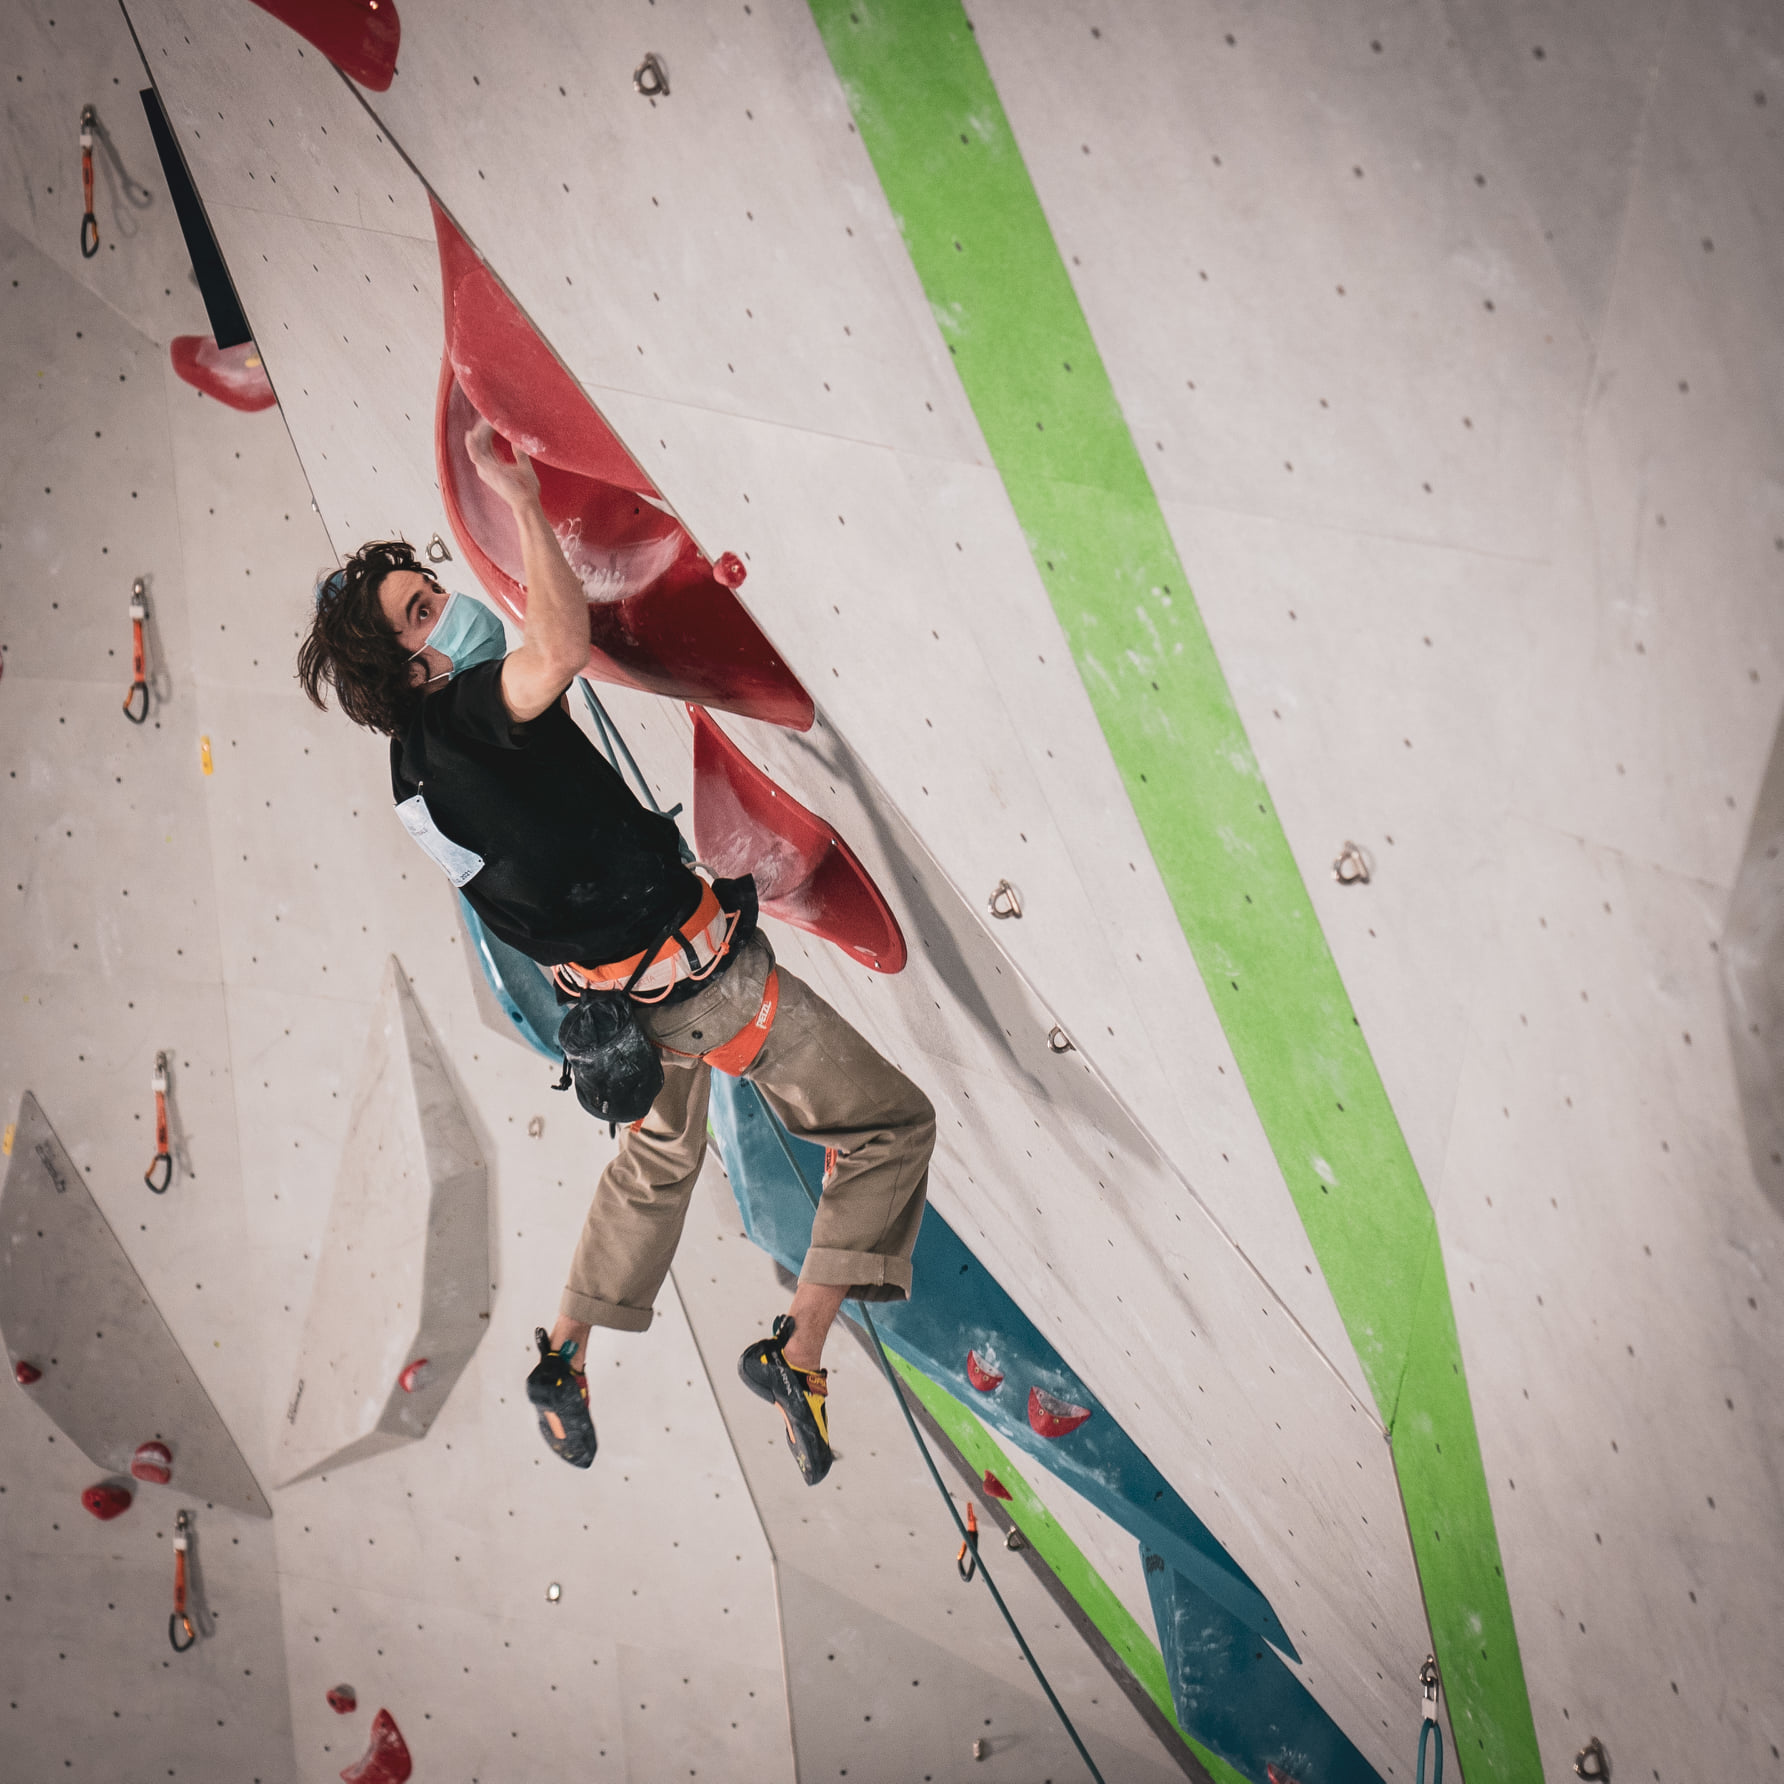 Male competitor mid jump on climbing wall